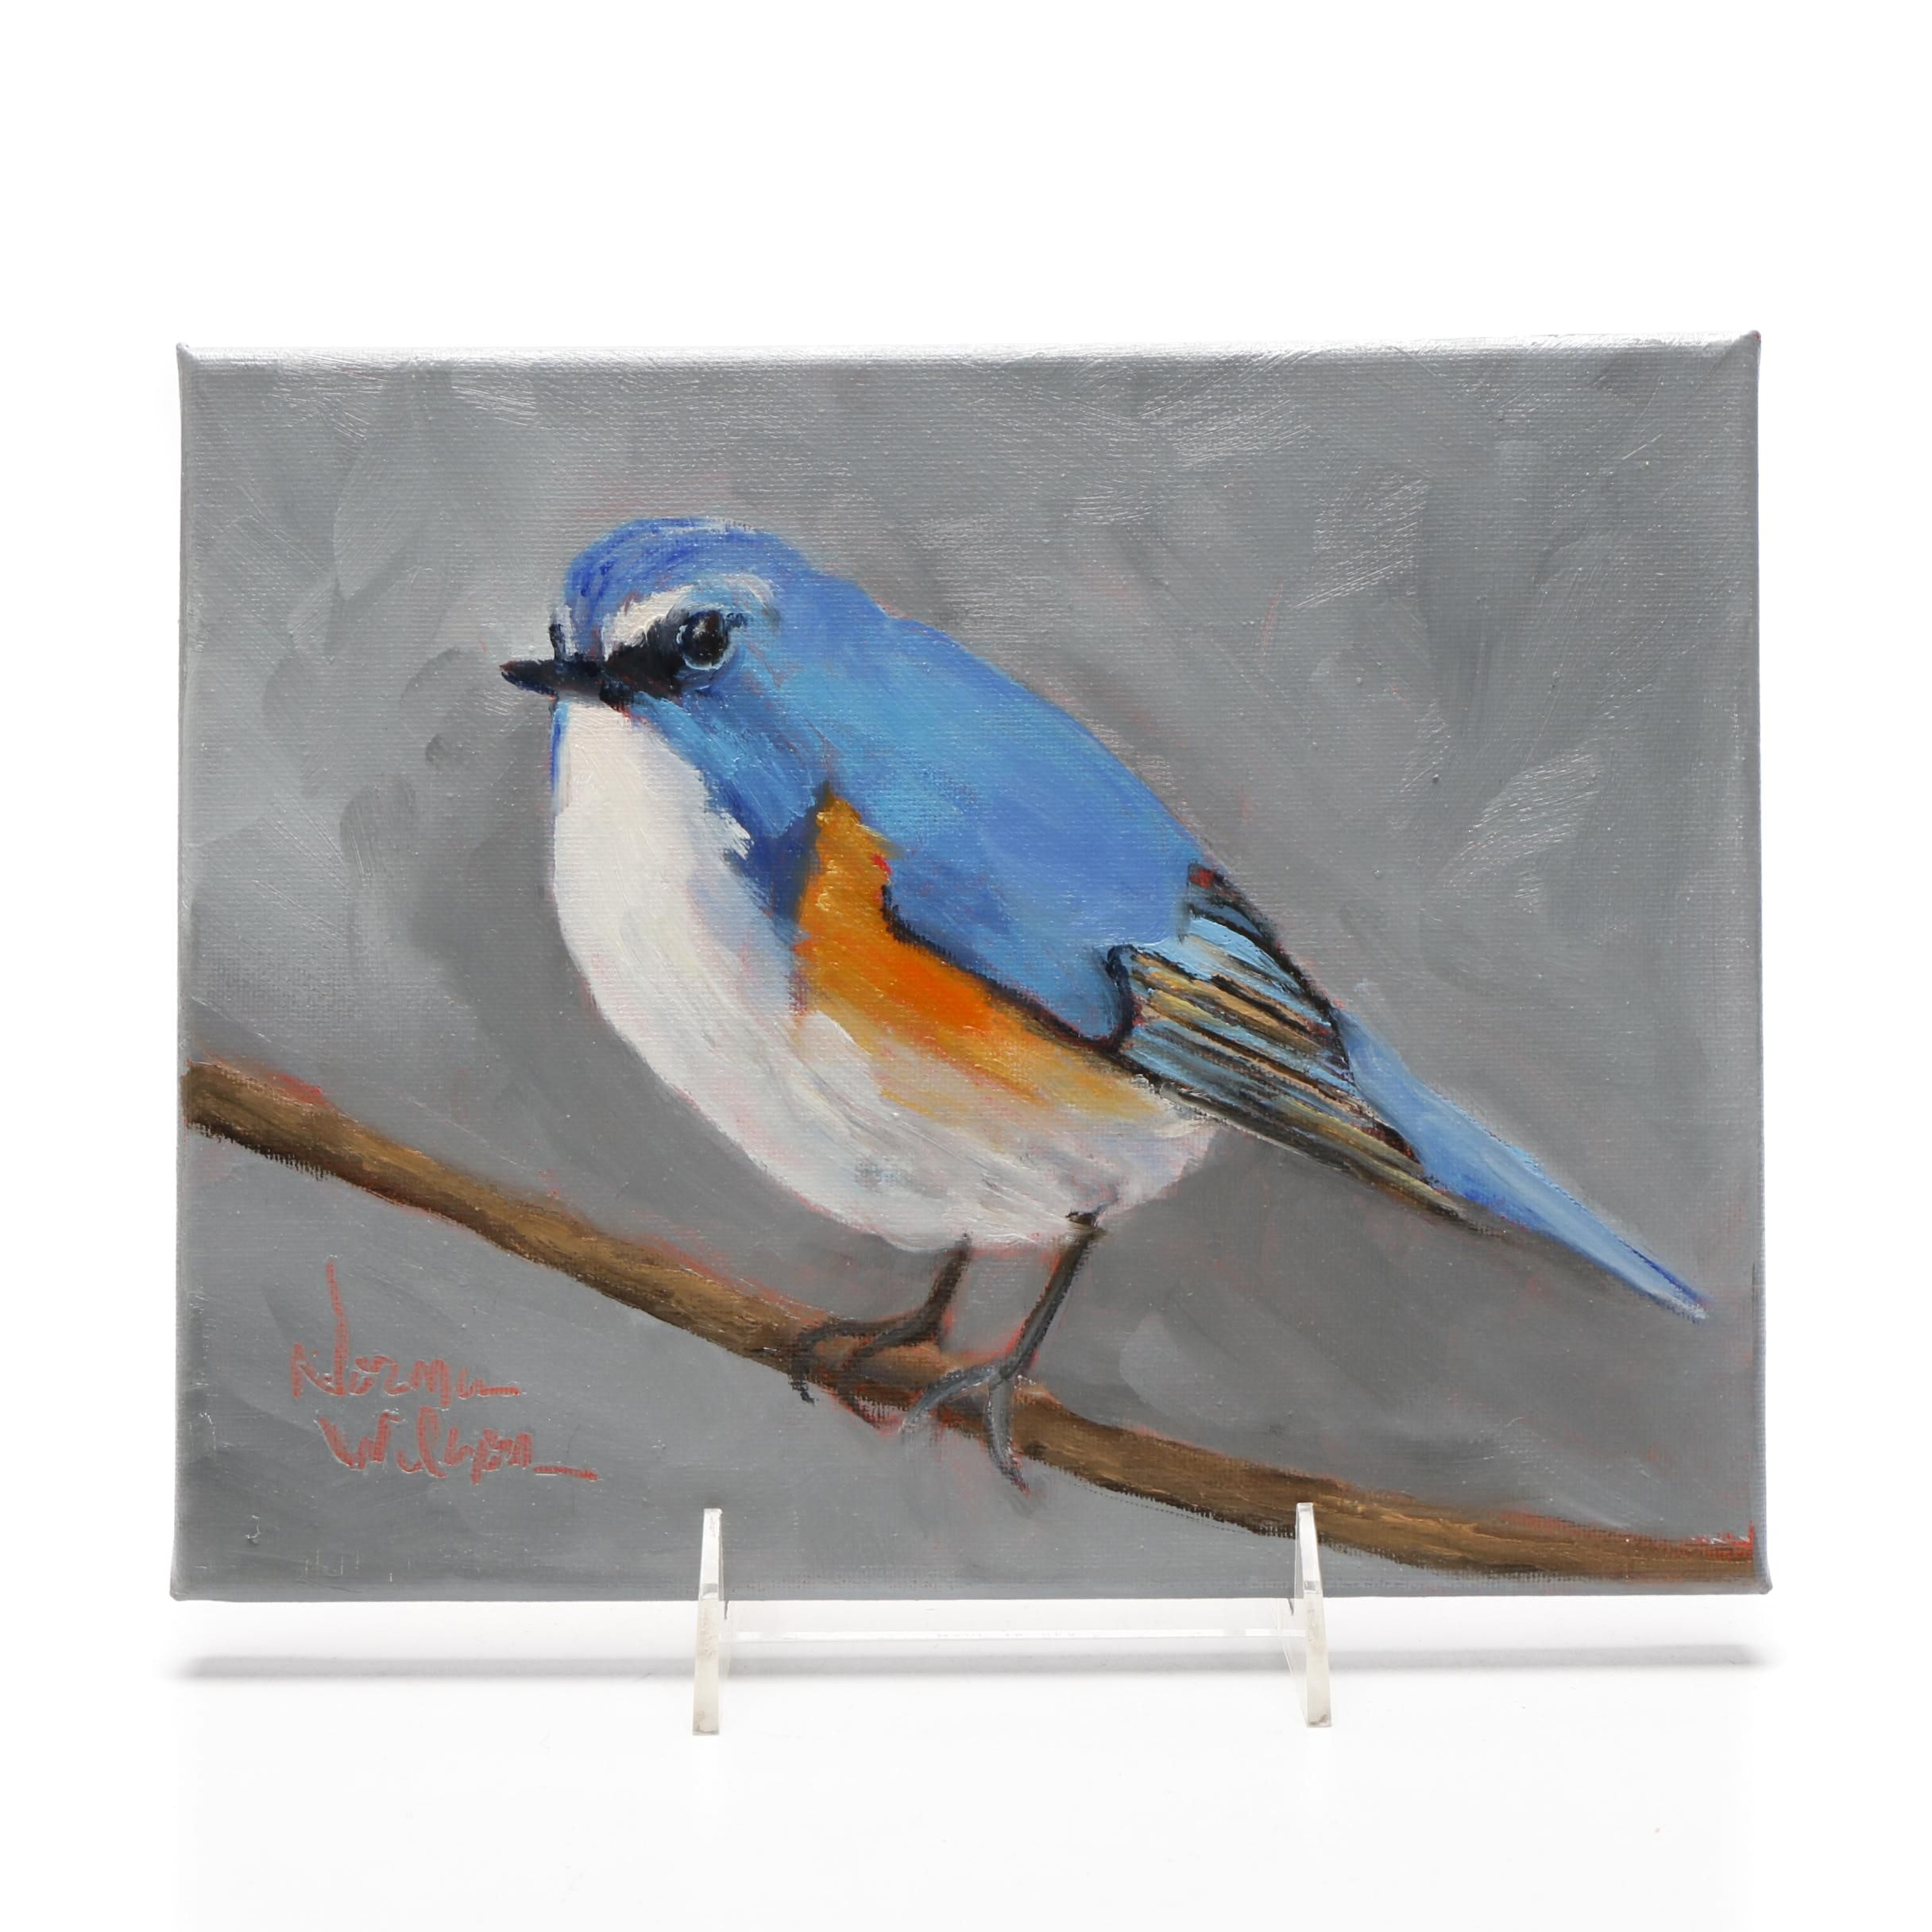 Norma Wilson Oil Painting of a Bluebird